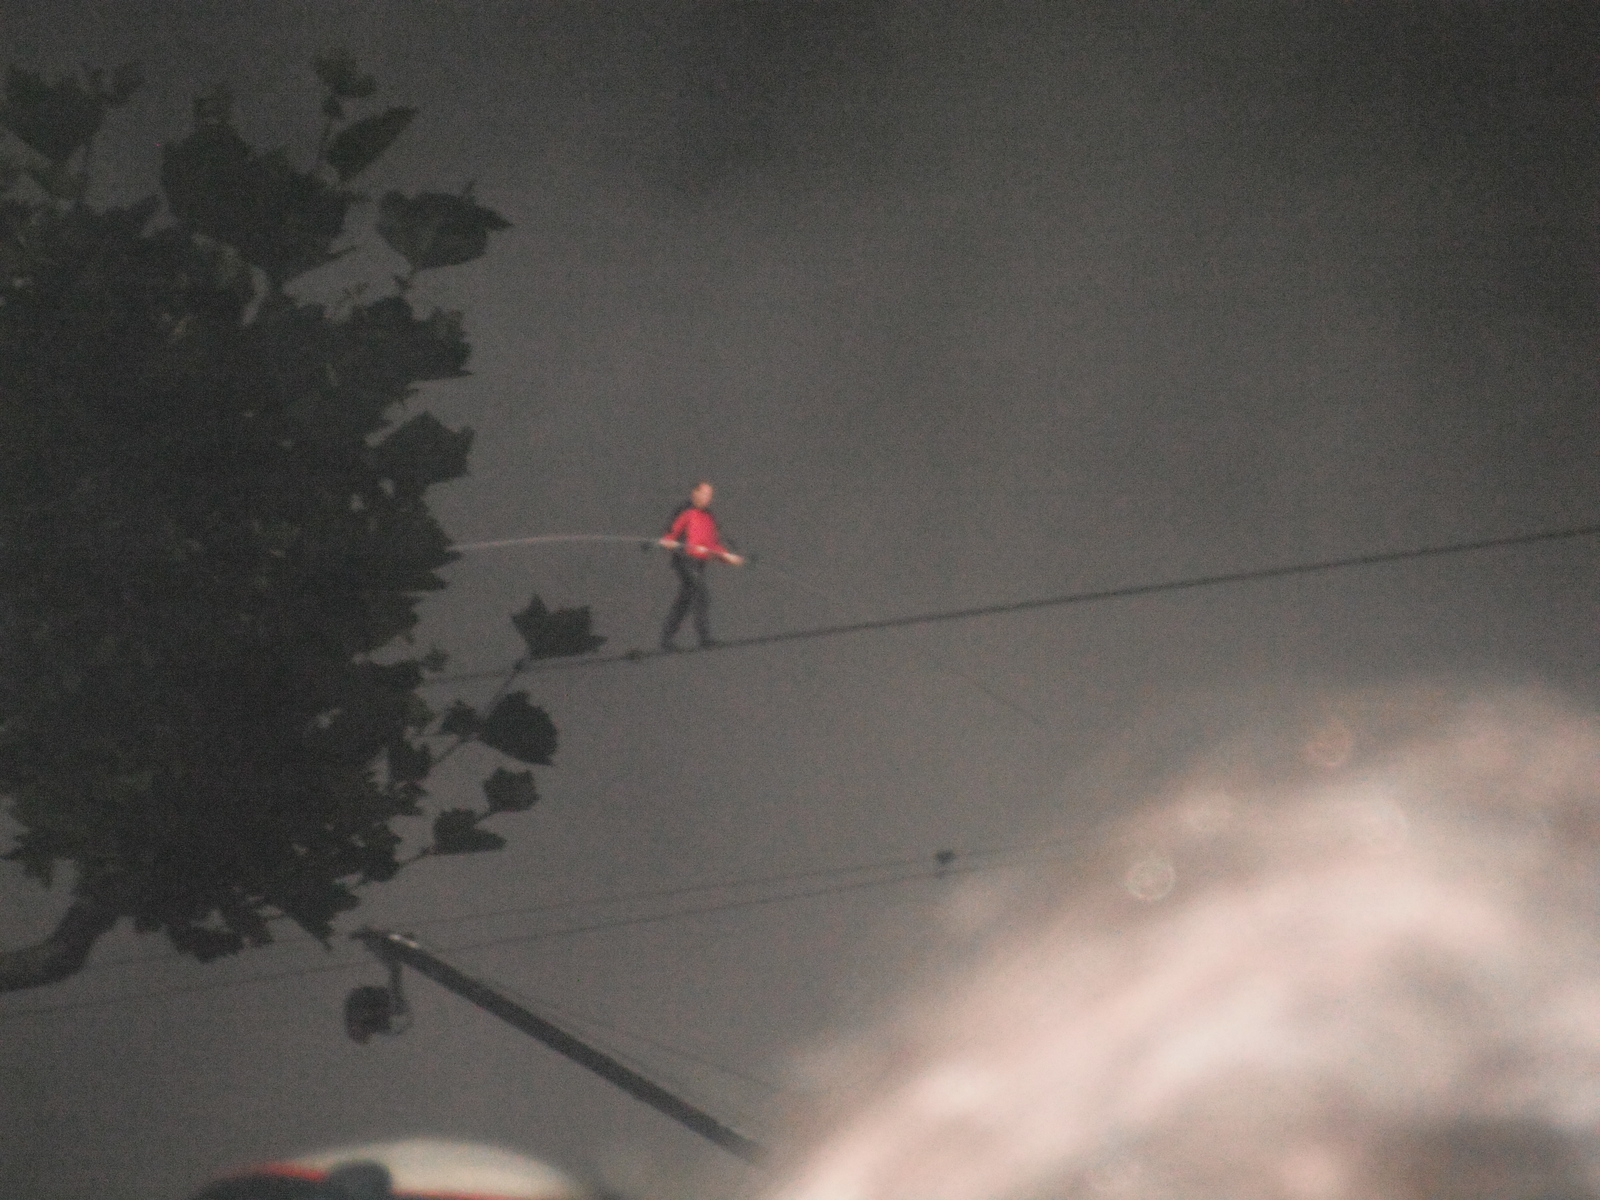 nik wallenda niagara falls canadian side | by duane richard